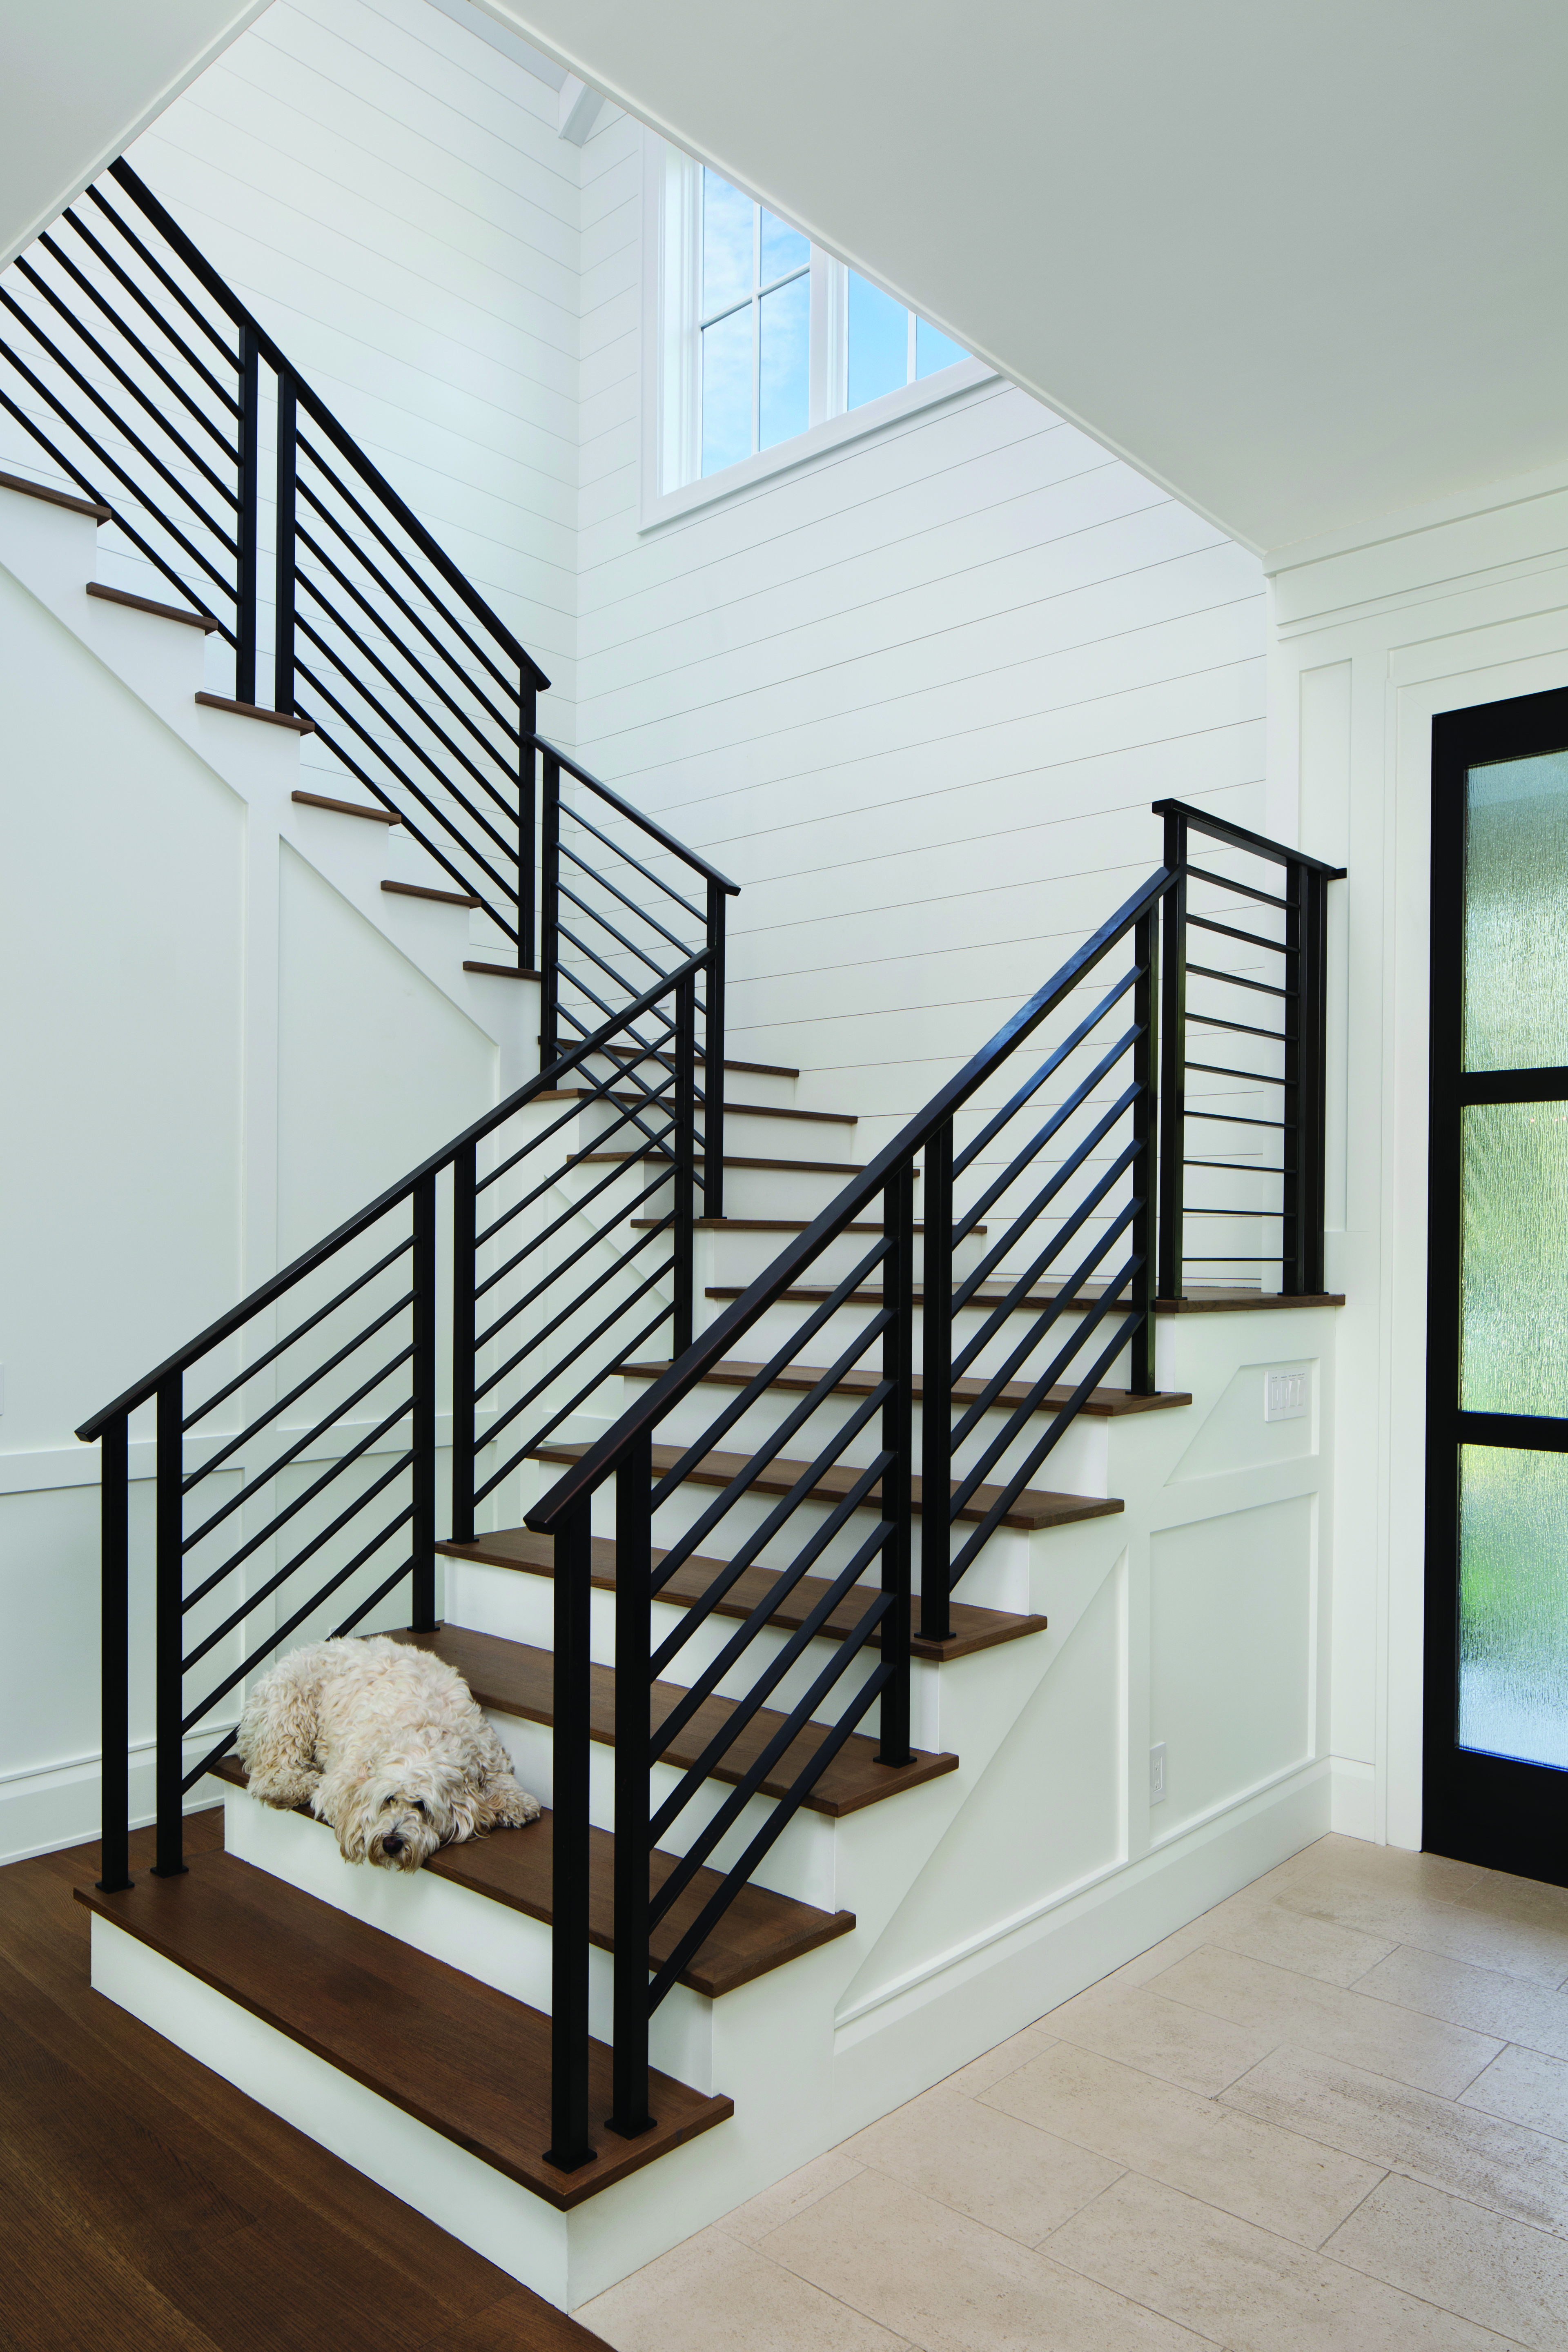 Walk up a custom staircase to discover the rest of the home.